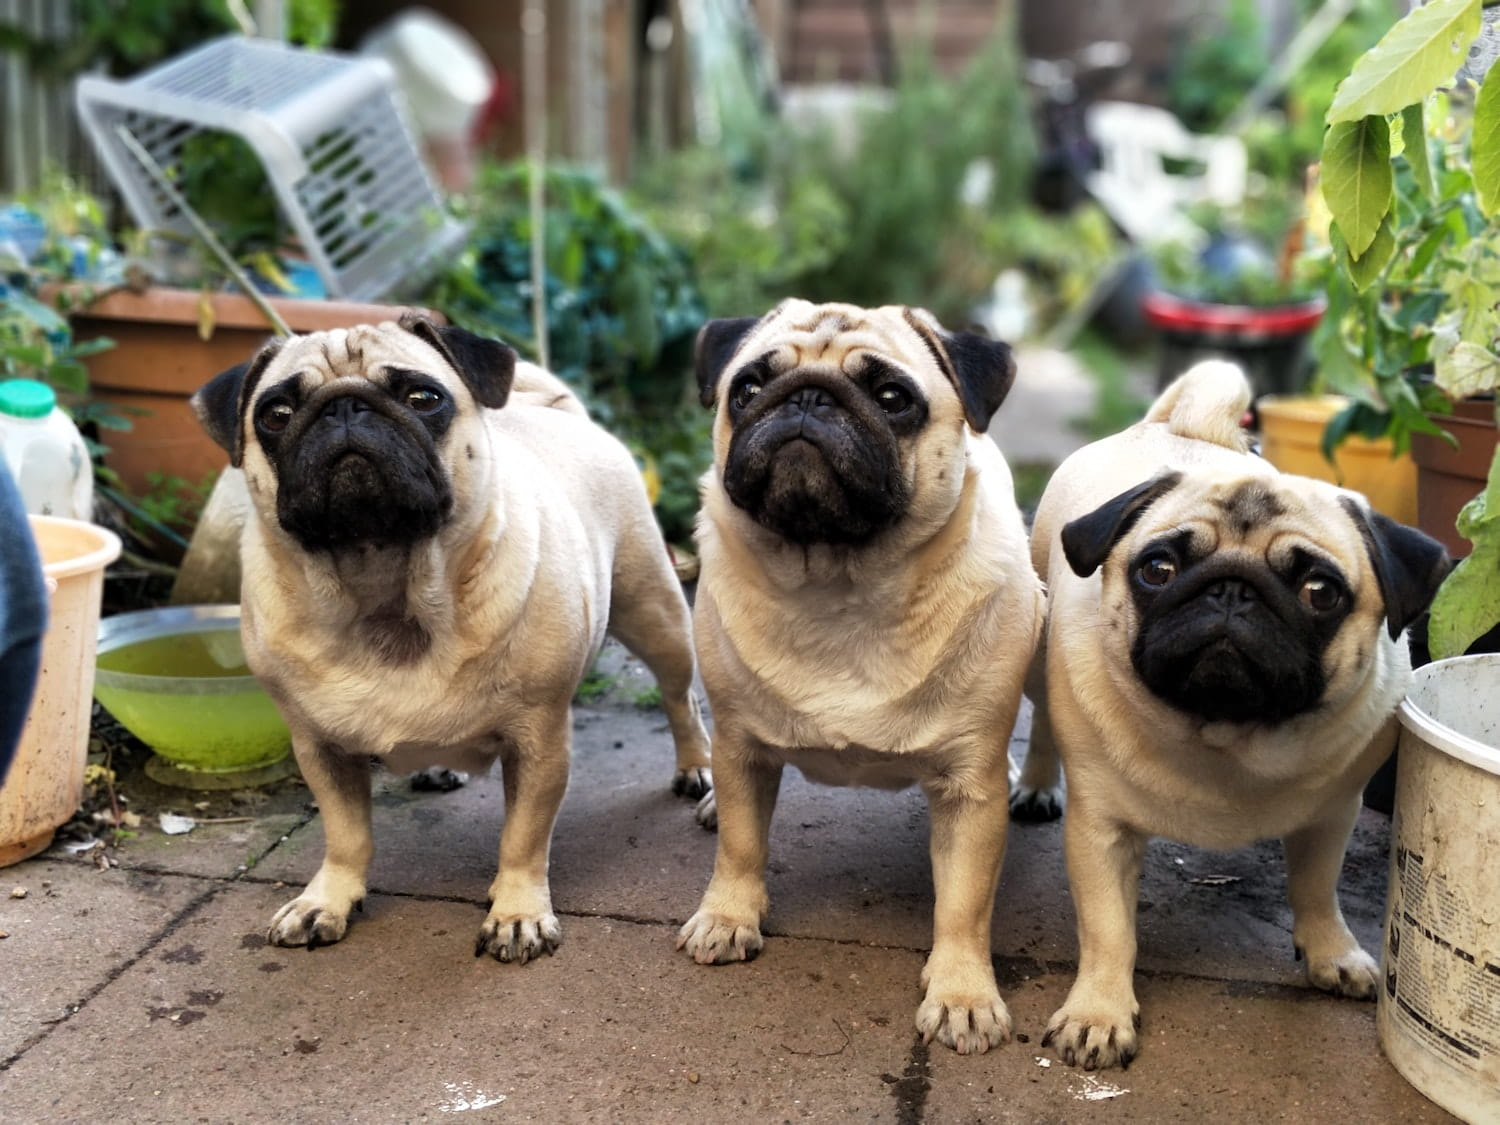 A trio of pugs standing outside in the garden amidst plant pots and tools